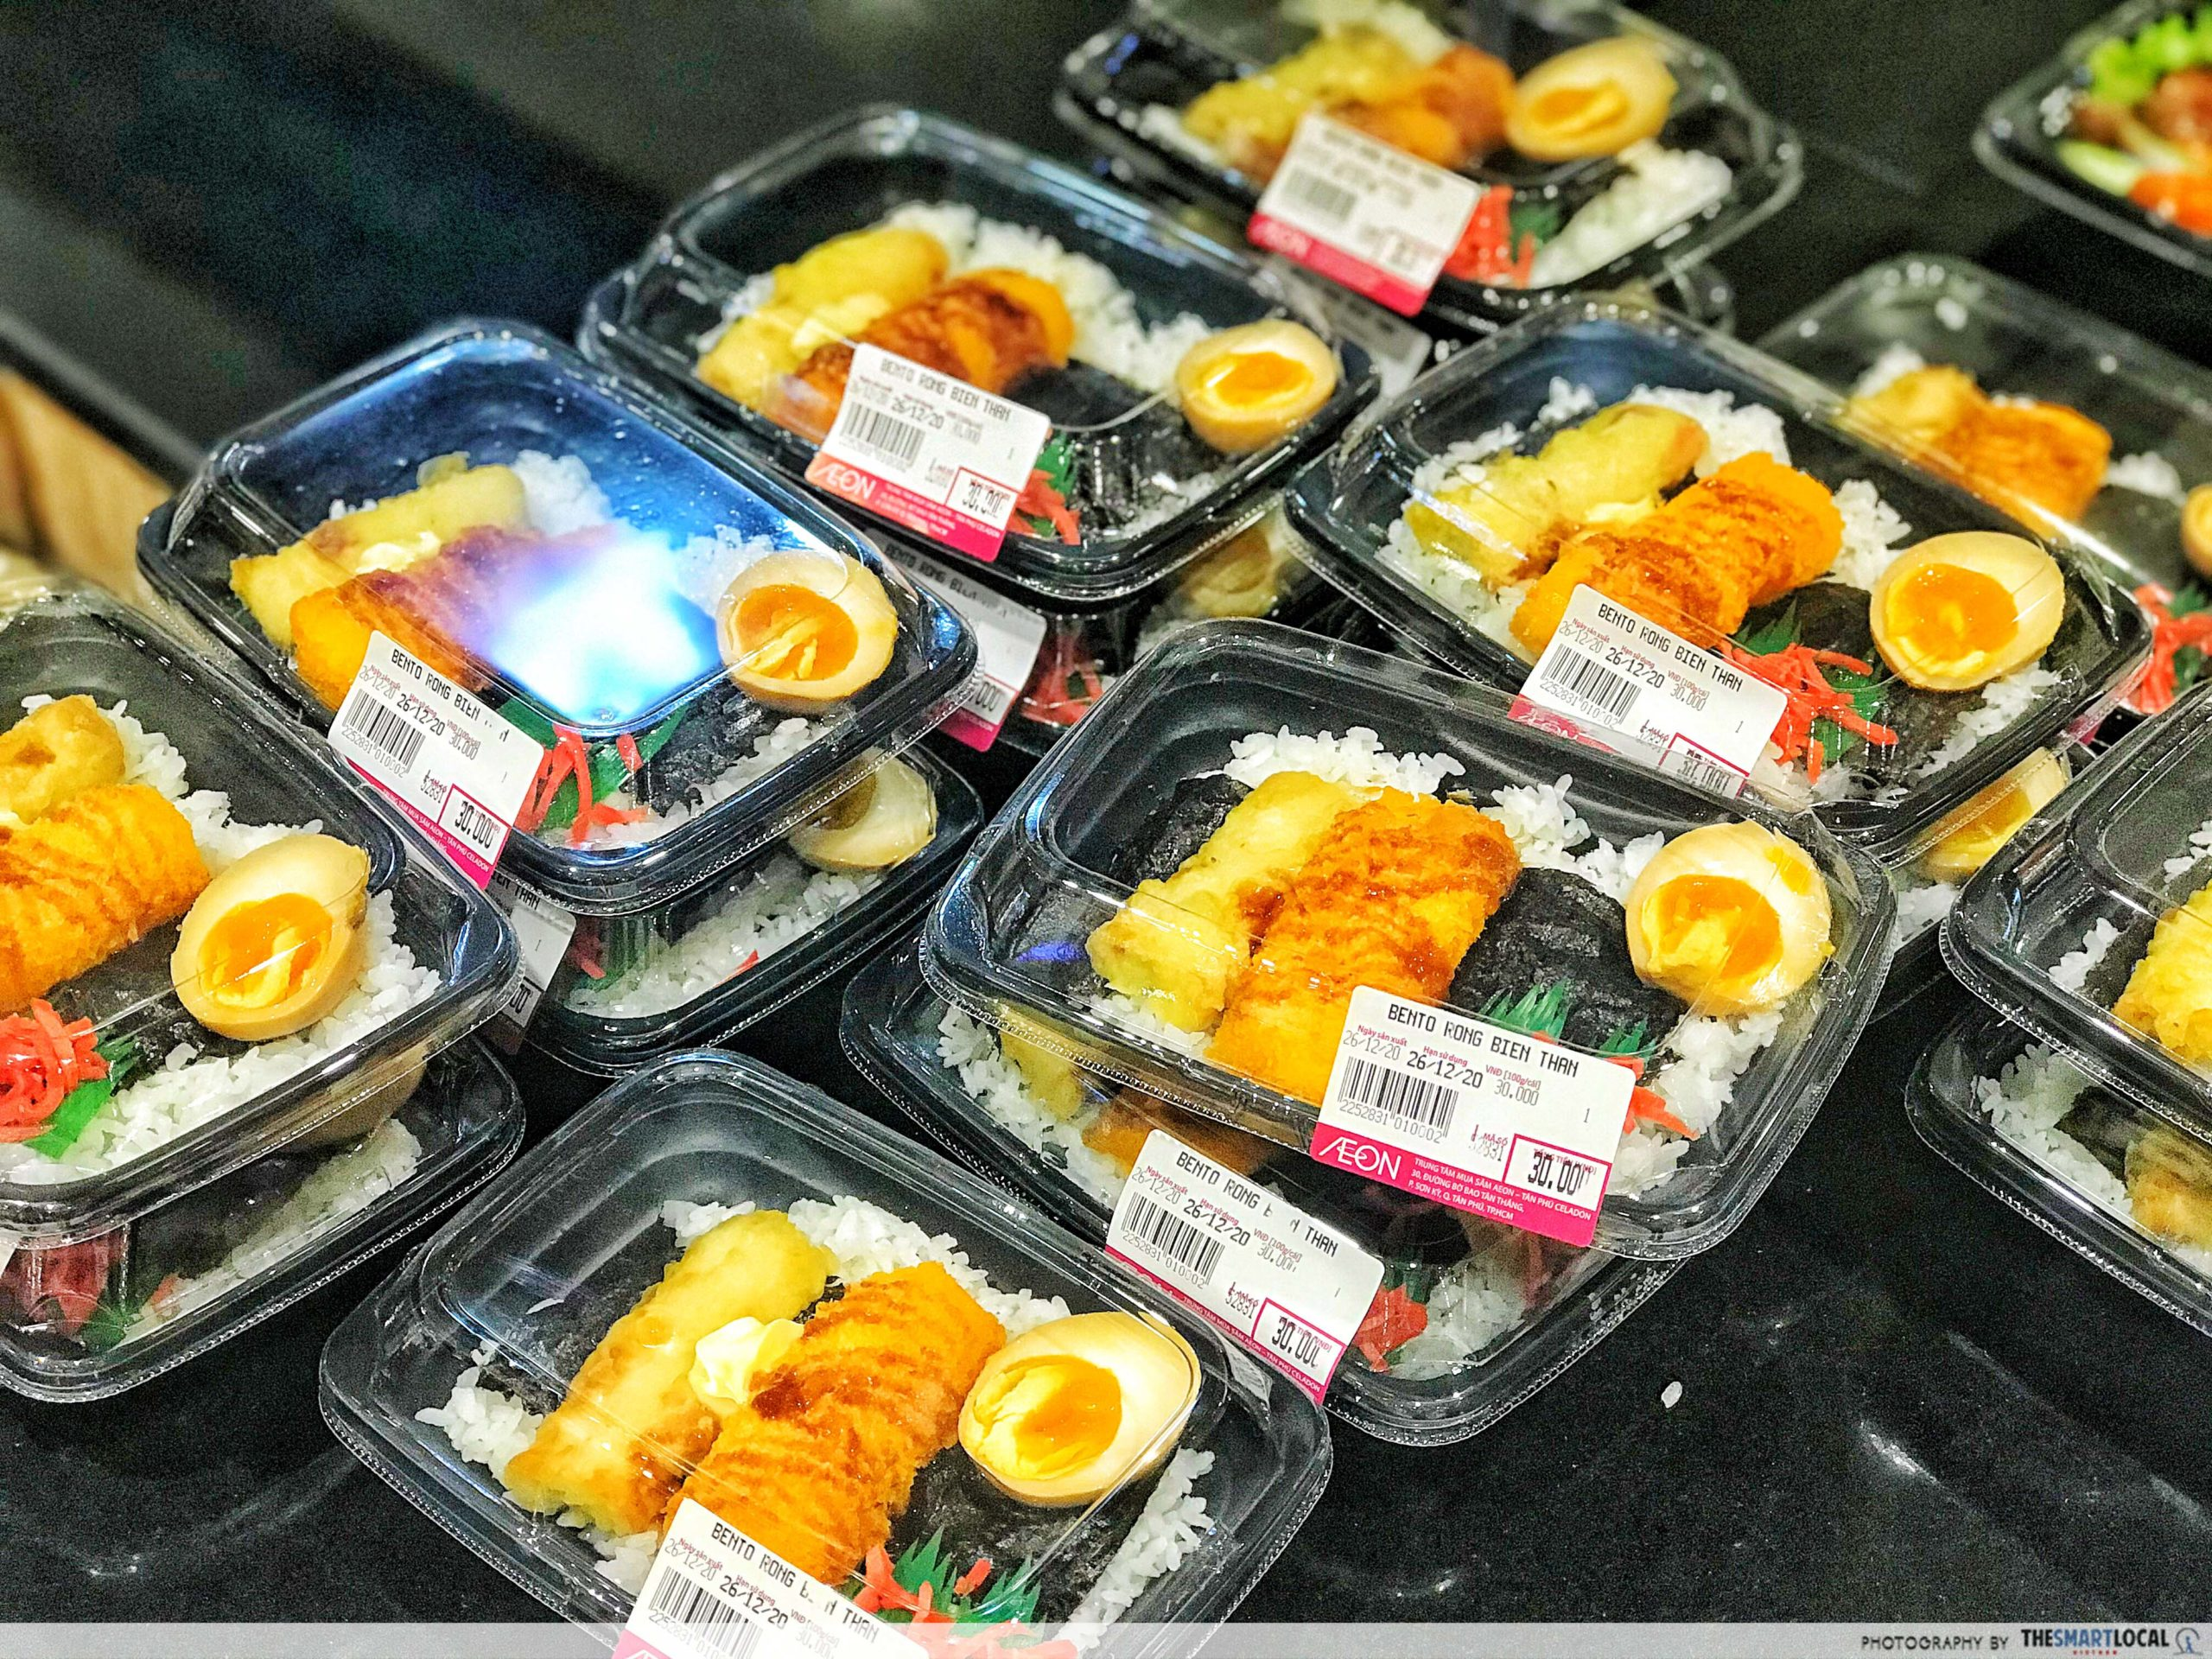 AEON MALL MEAL BOXES